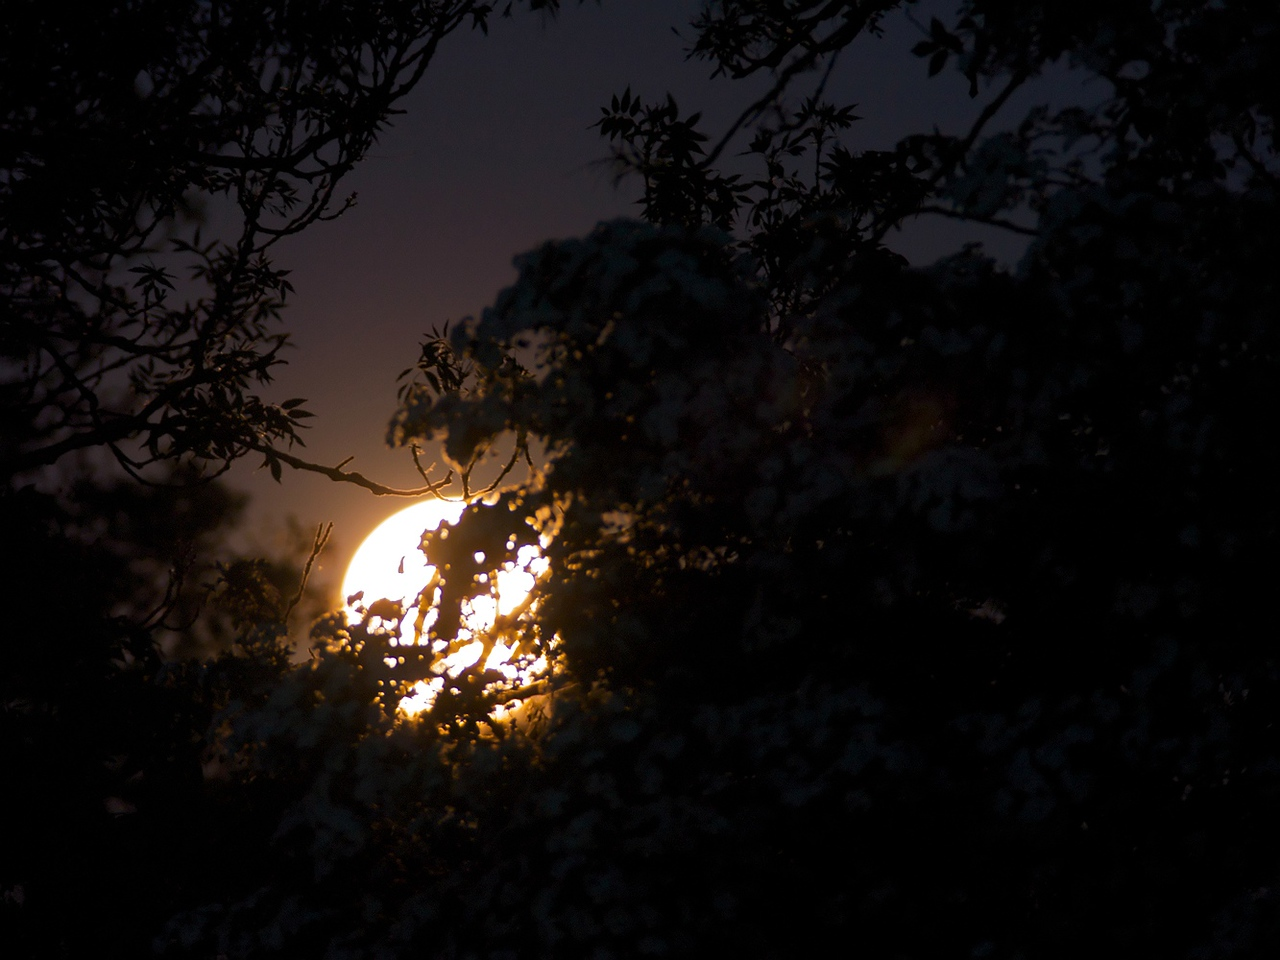 May 27 2010. Full 'milk' moon hiding behind the vegetation. Olympus E3, 90-250mm & x2 TC